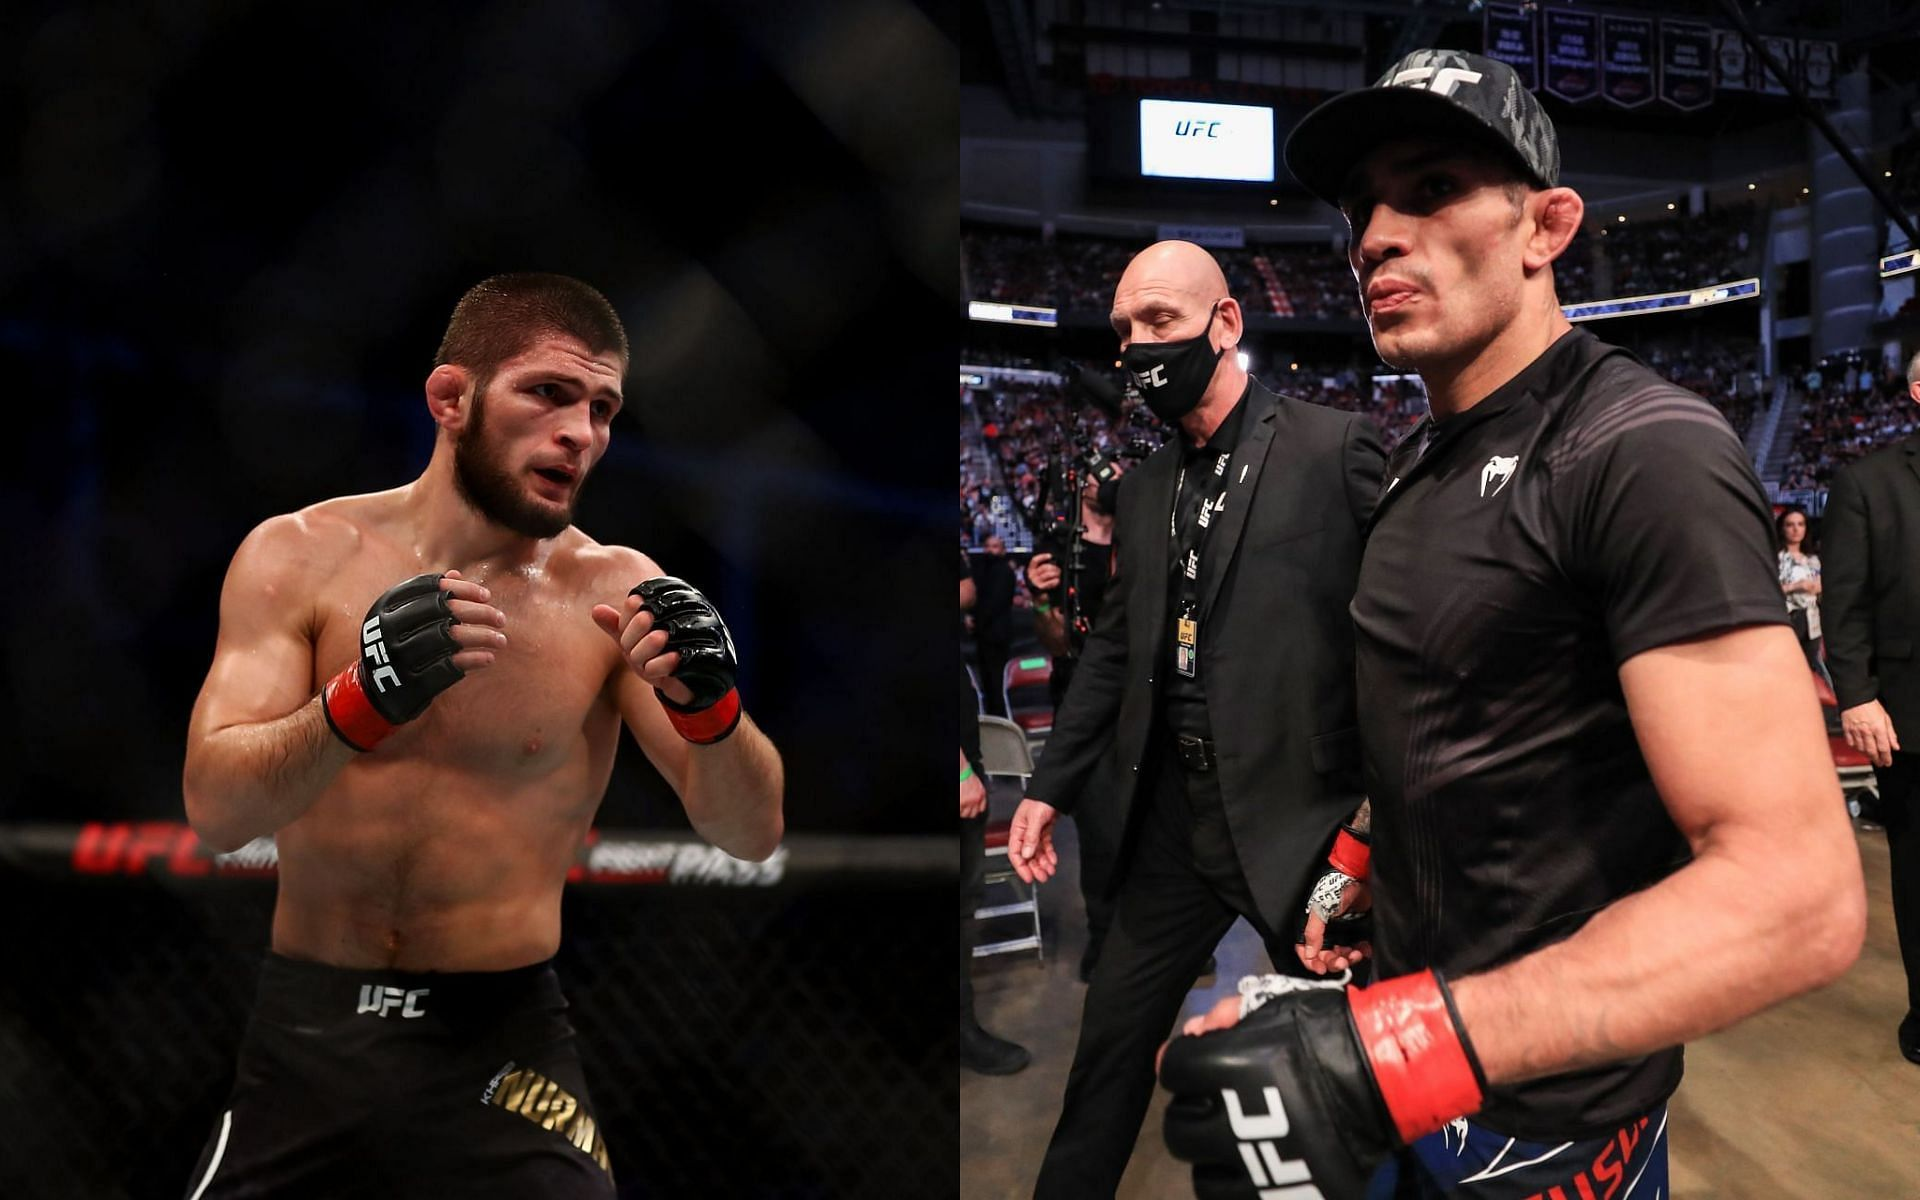 Tony Ferguson takes a look back at the infamous cancelled fight between himself and Khabib Nurmagomedov at UFC 209